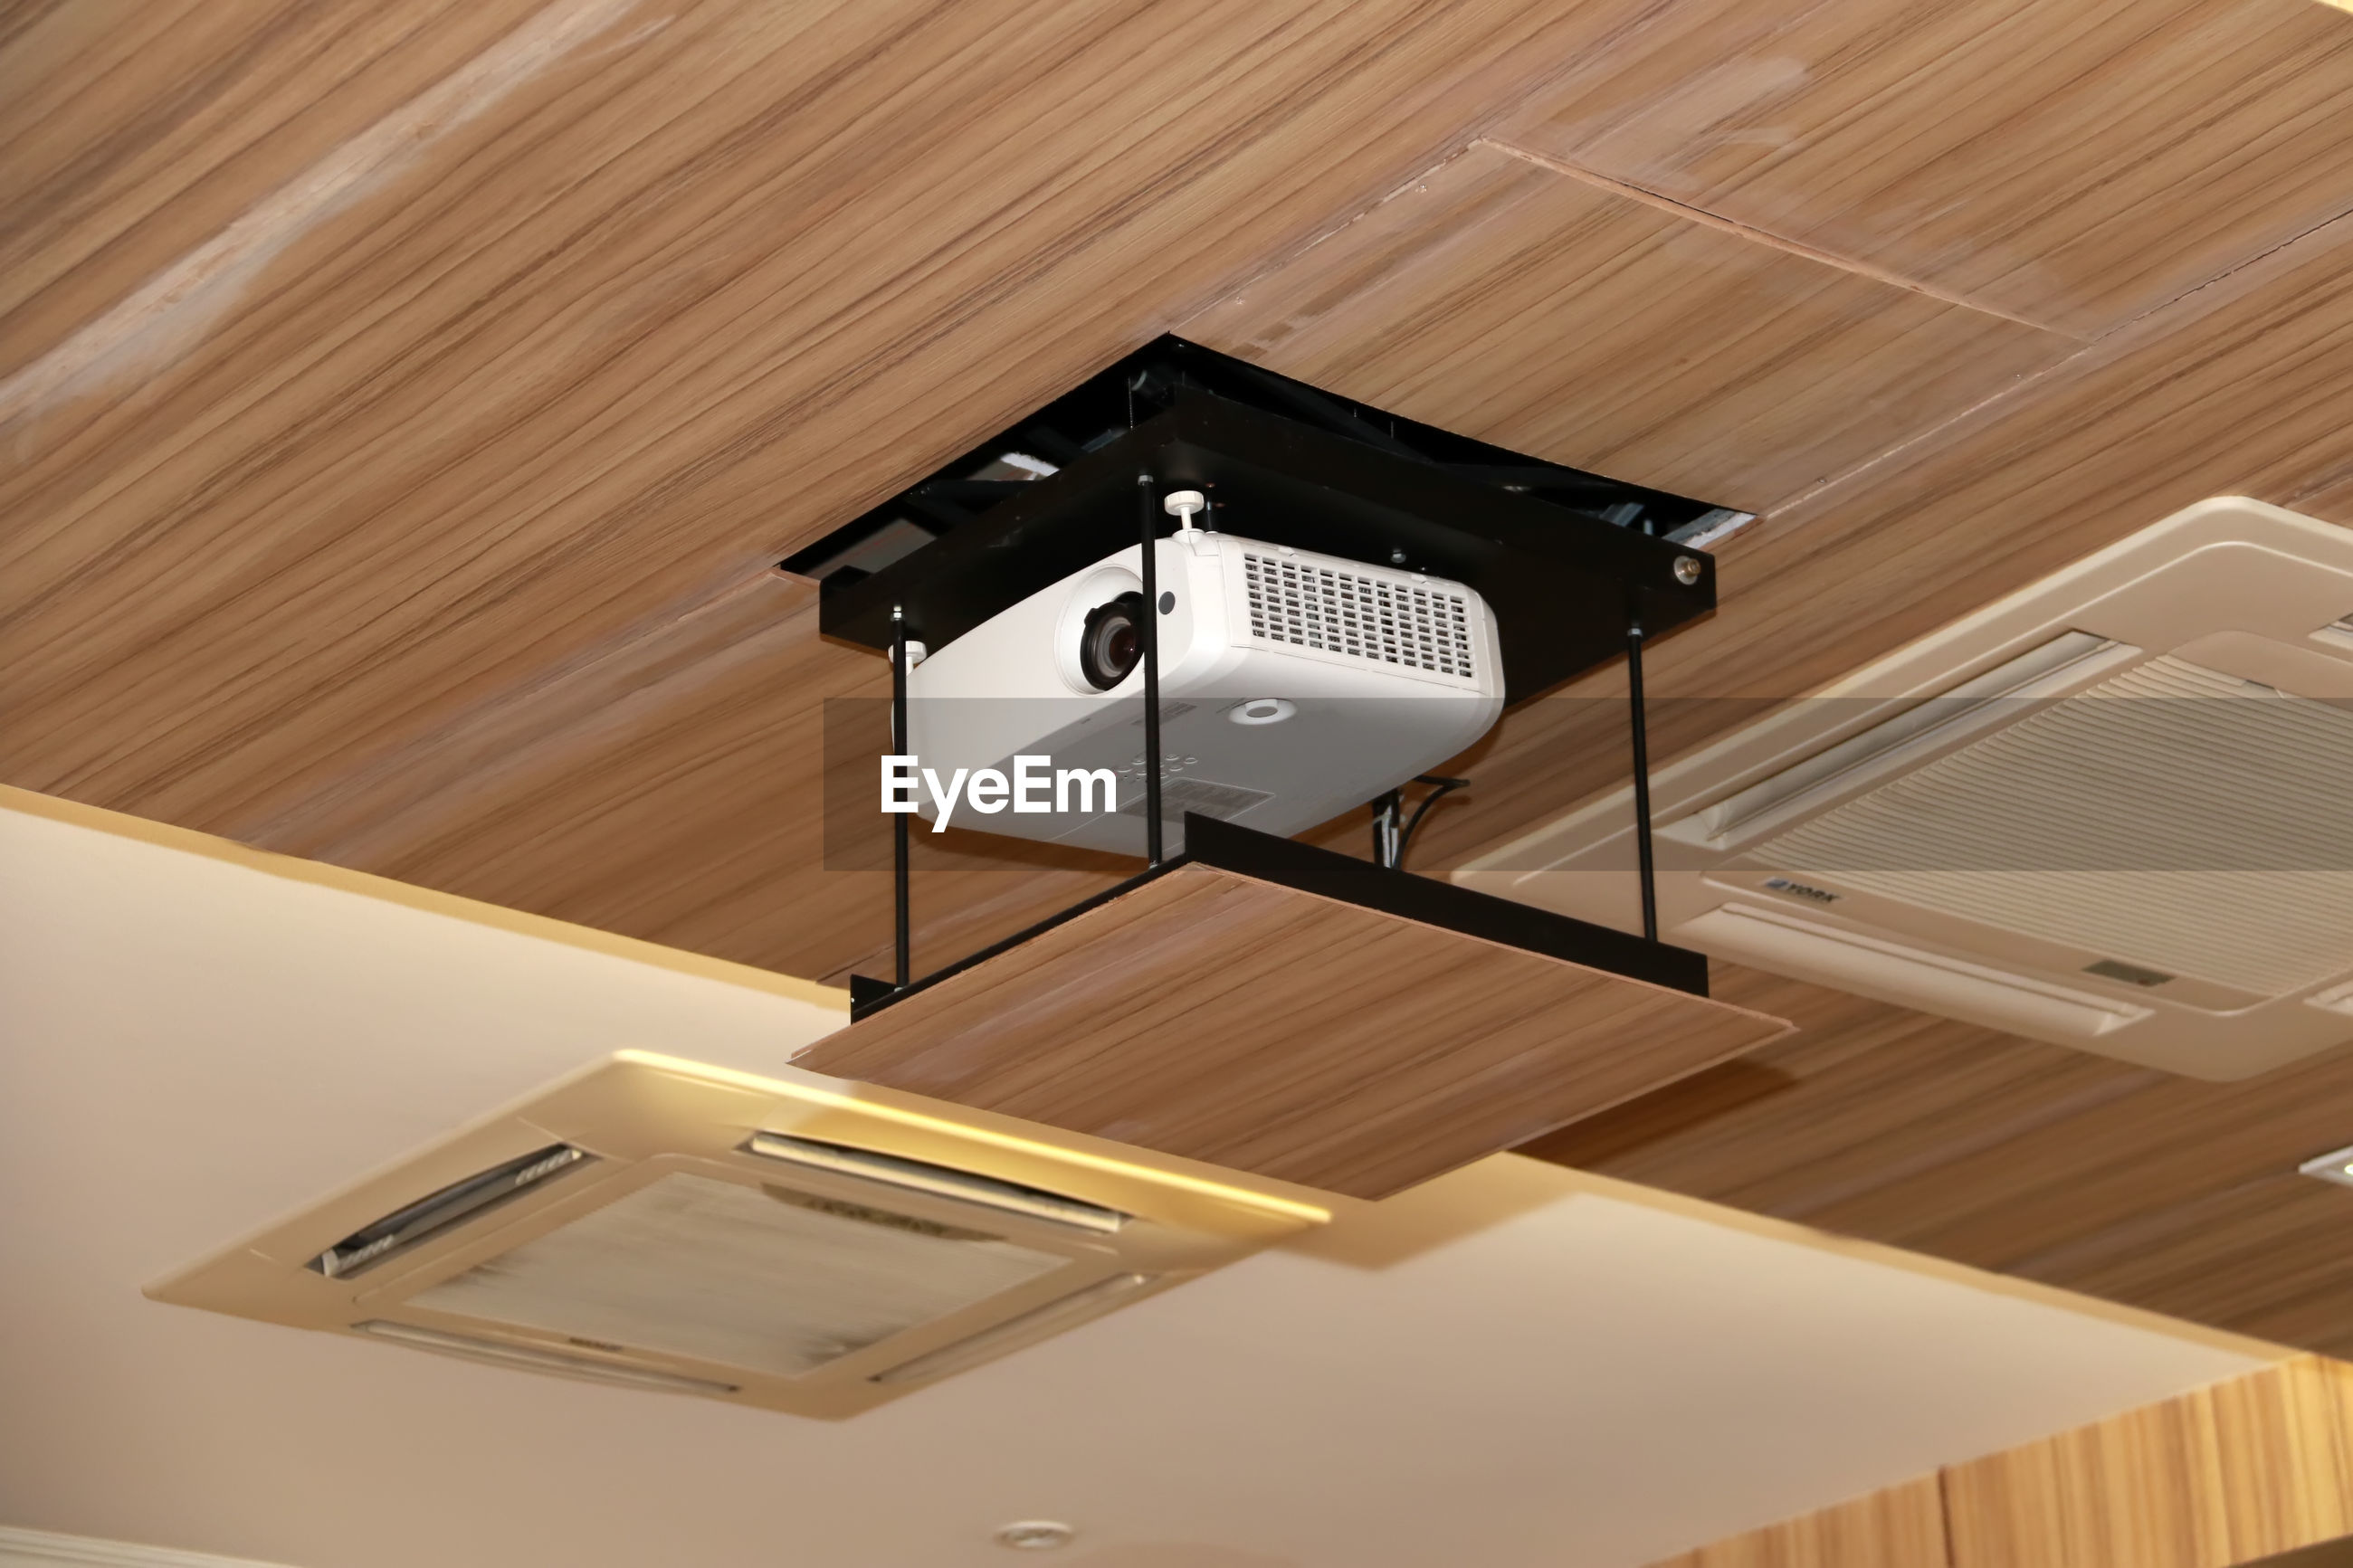 Low angle view of projection equipment attached to ceiling in conference room